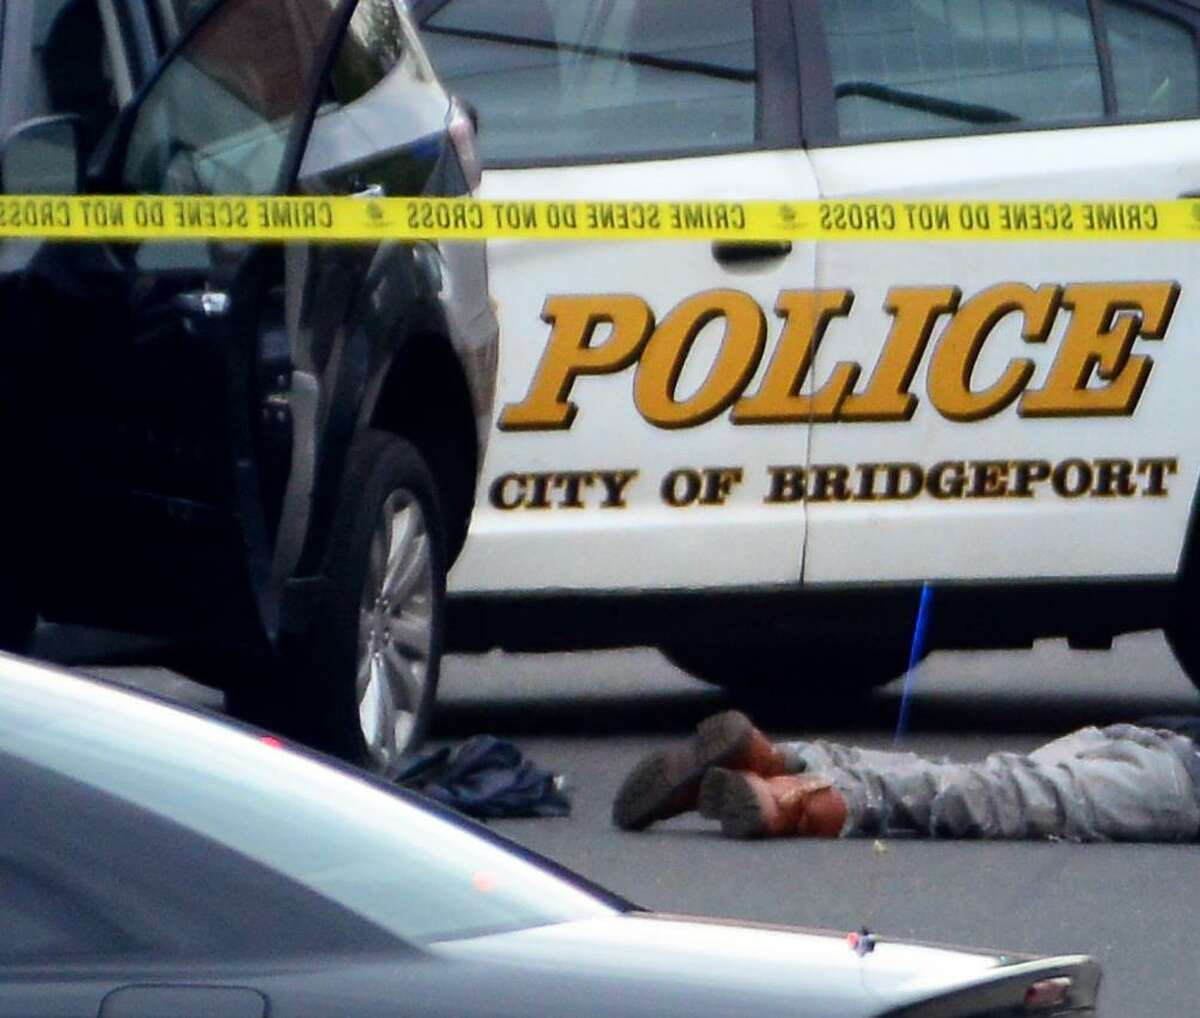 Jayson Negron's body lies on the street after the fatal shooting on Tuesday in Bridgeport.